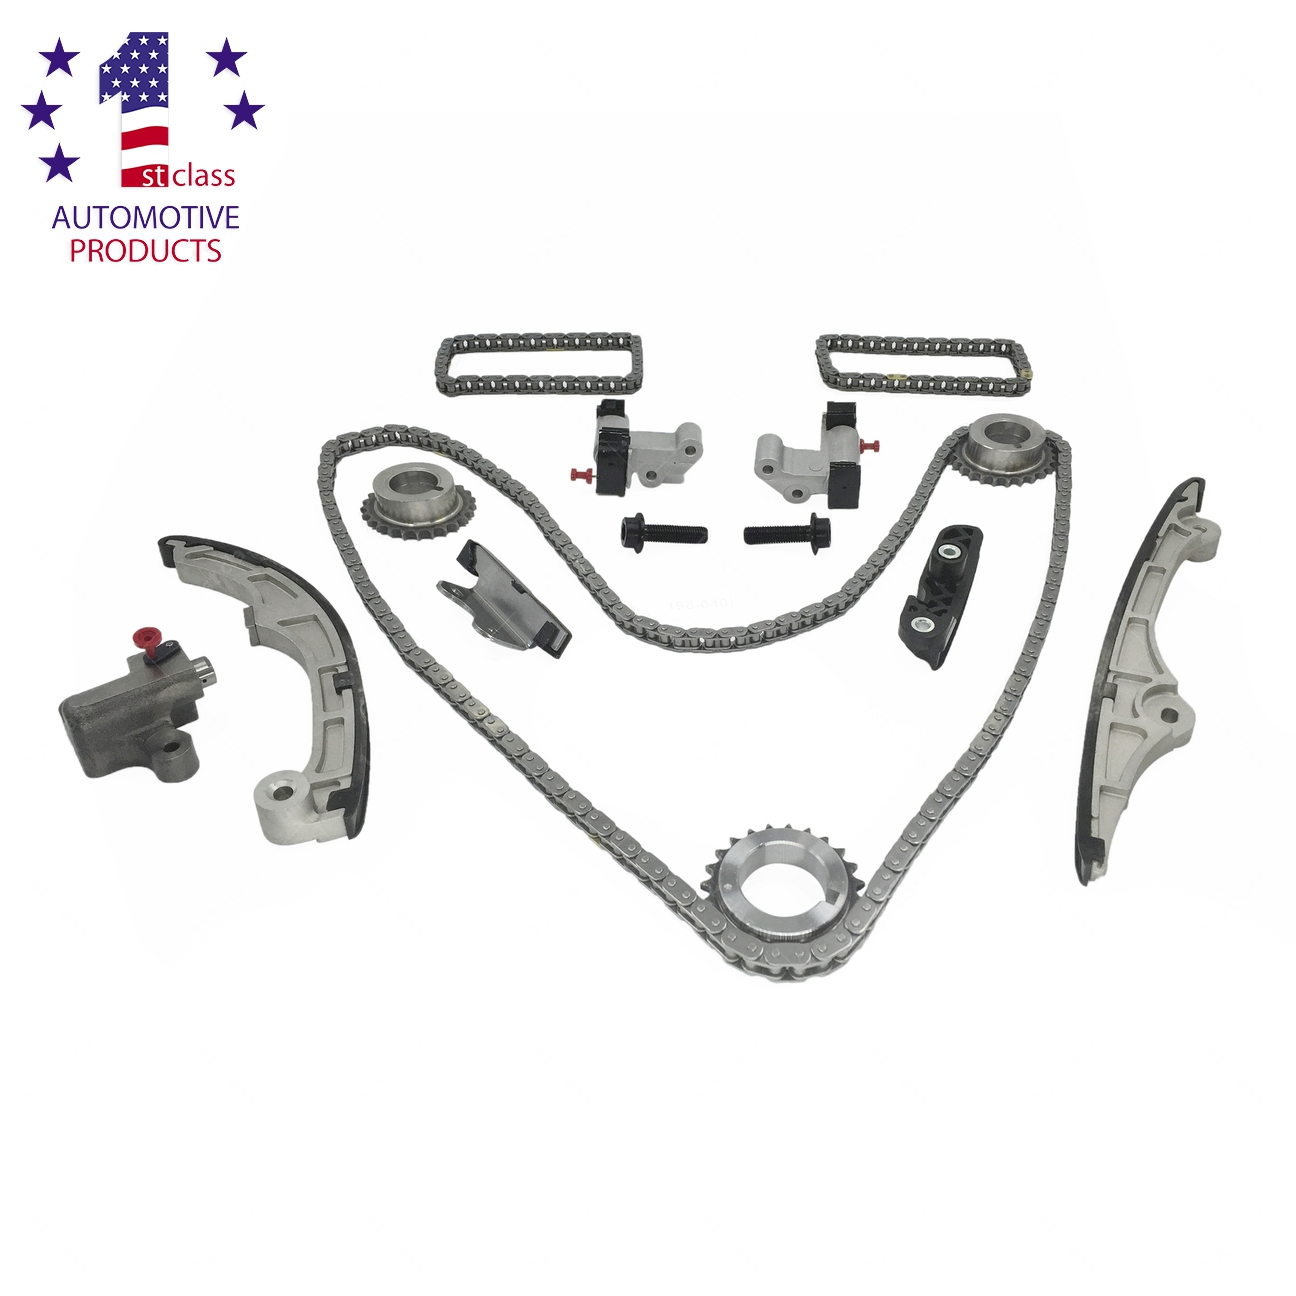 New Timing Chain Kit For 07 10 Ford Lincoln Edge Taurus Mkz V6 3 5l Dohc Duratec